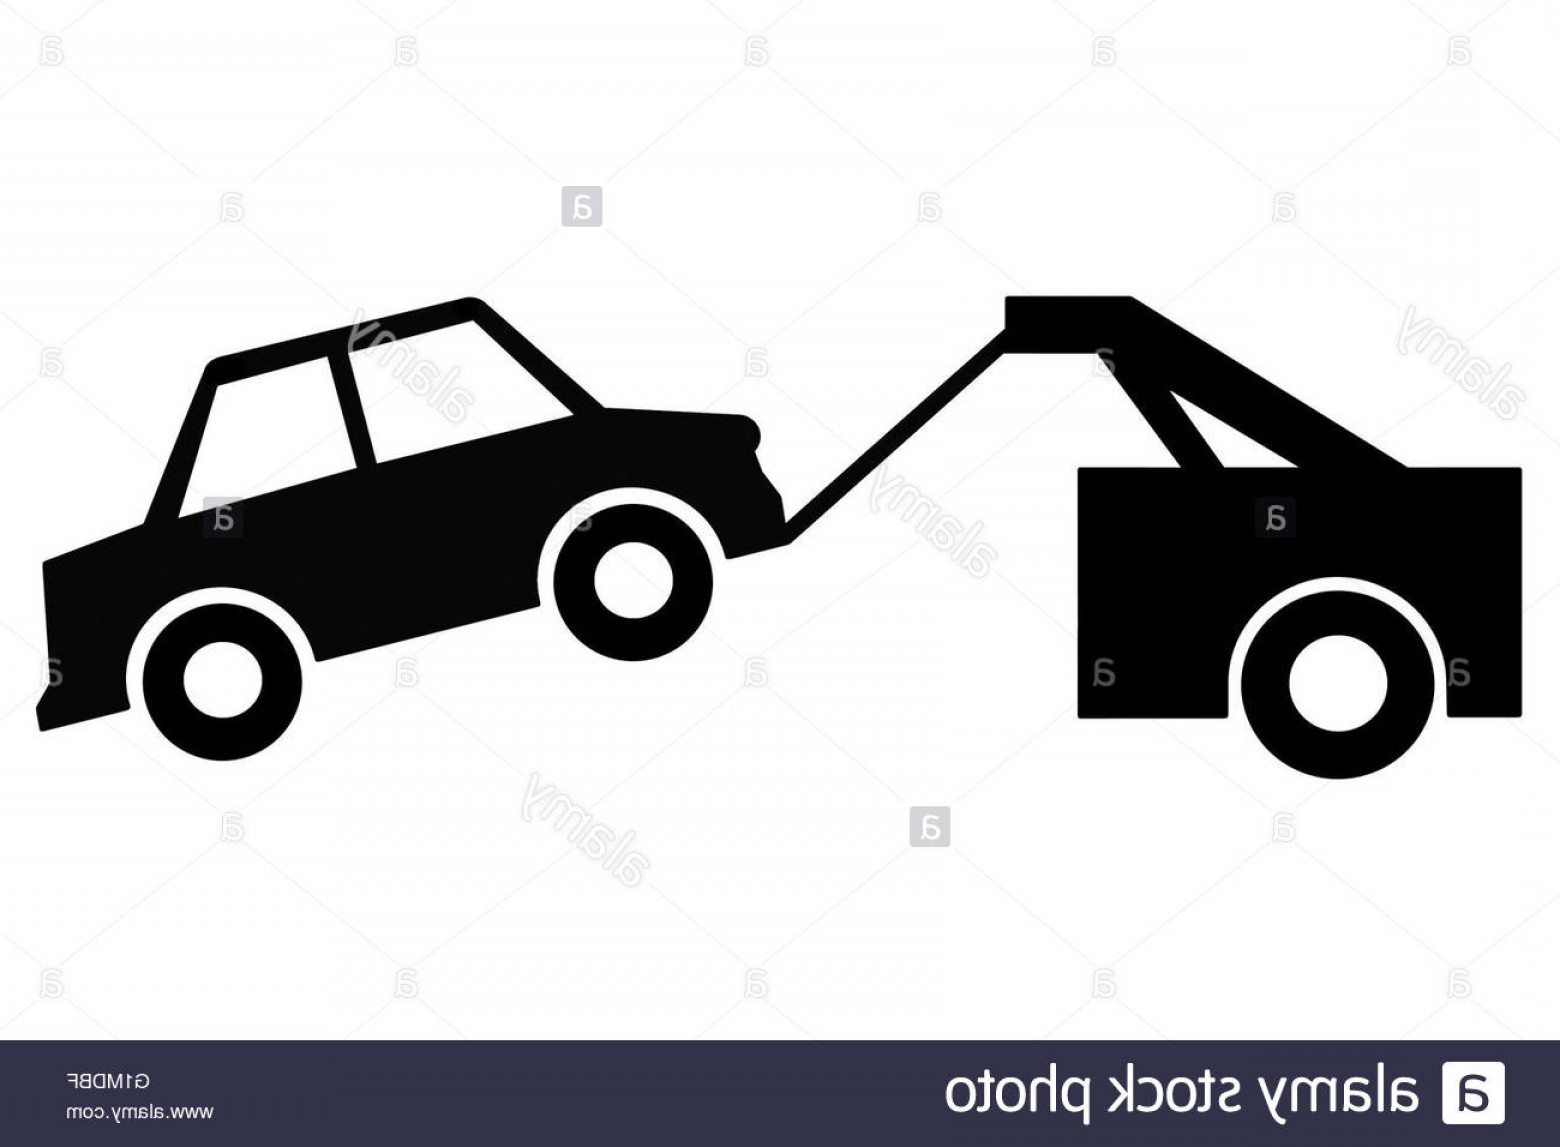 Towing Vector Clip Art: Stock Photo Vehicle Or Car Towing Sign Or Illustration As Clip Art